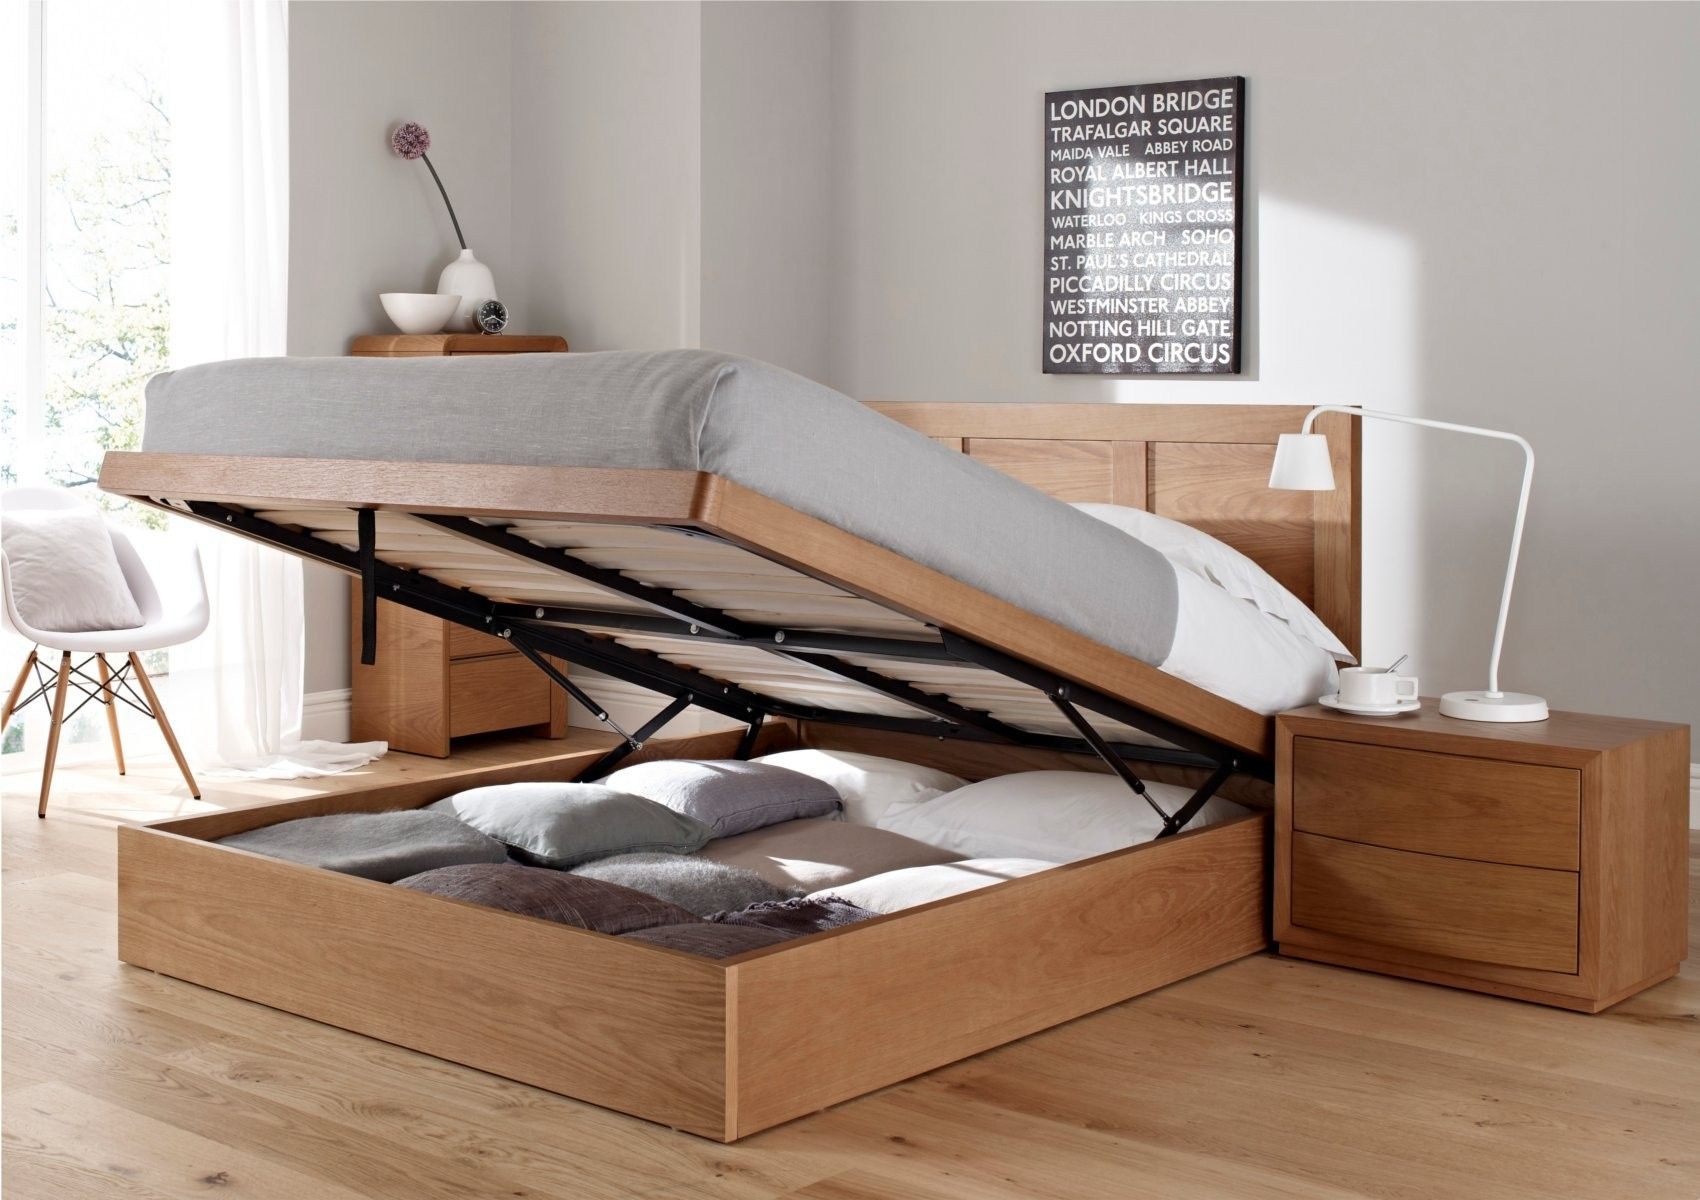 Best Oakland Ottoman Storage Bed Smart Thinking To Hide All 400 x 300